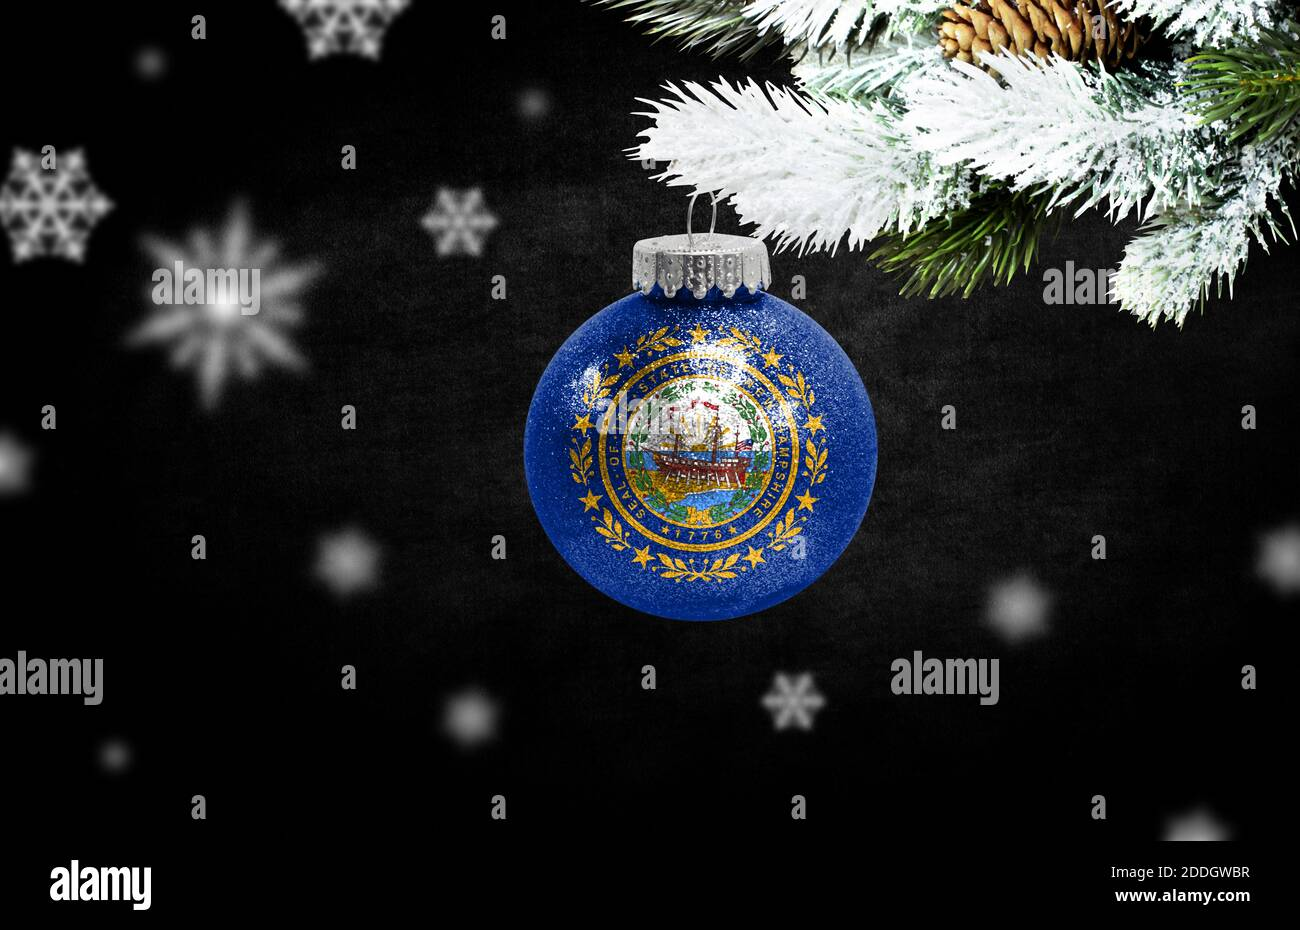 Christmas In New Hampshire 2021 Christmas Golden Decoration Gold Star High Resolution Stock Photography And Images Page 9 Alamy